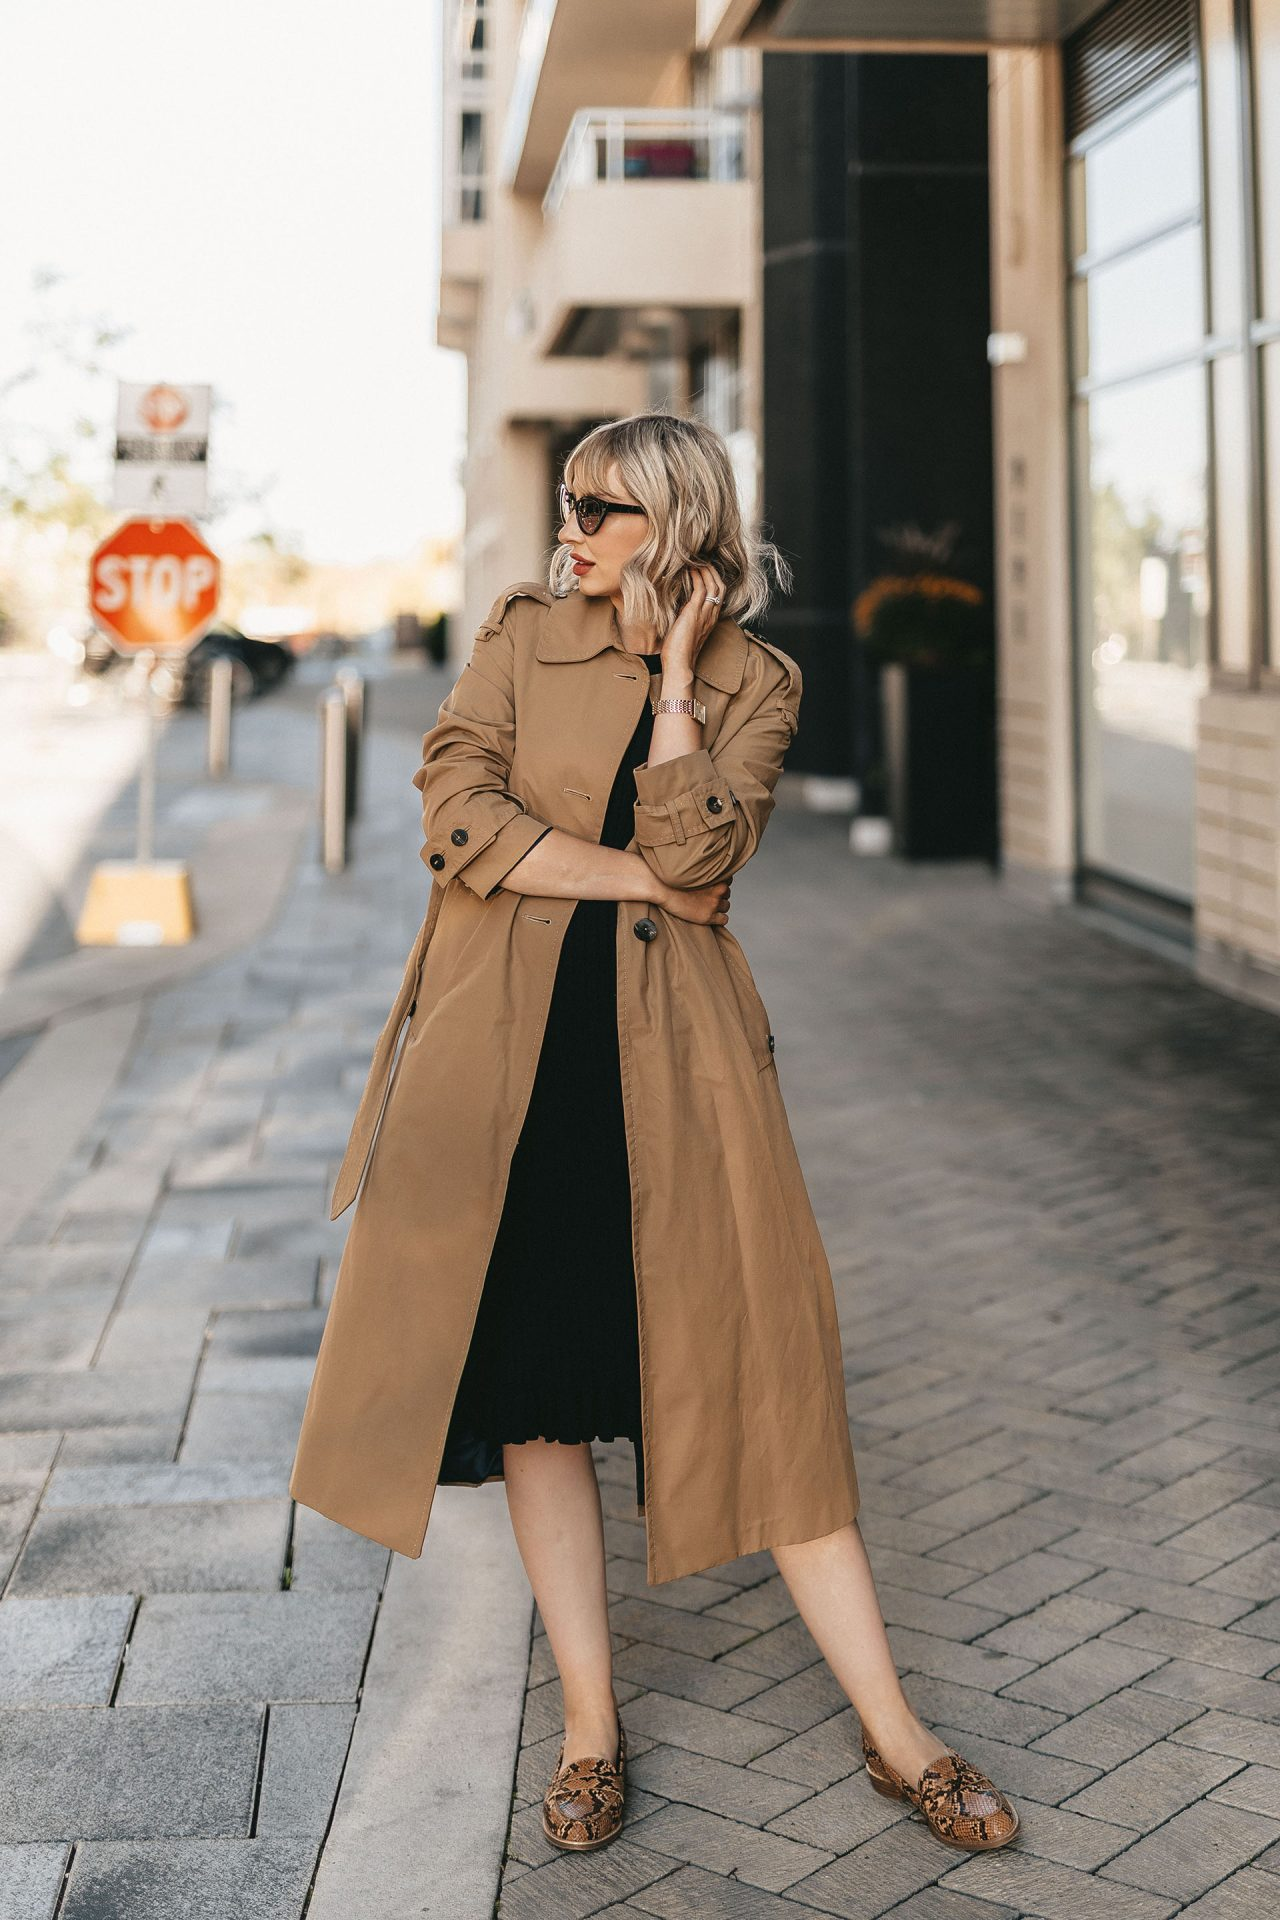 trench coat & knit dress (1 of 5)